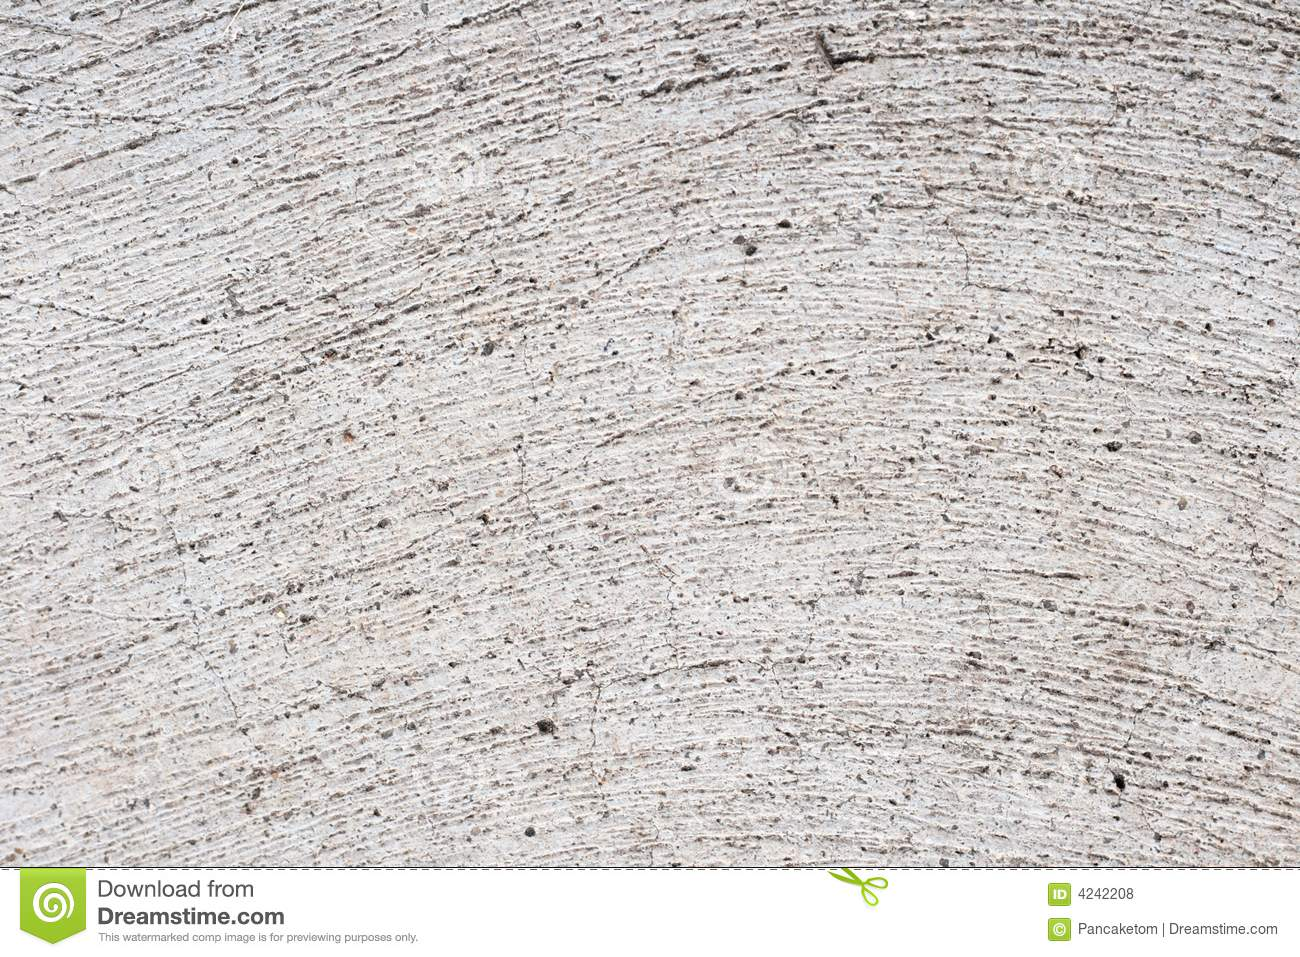 brushed concrete texture royalty free stock photos image On brushed concrete texture